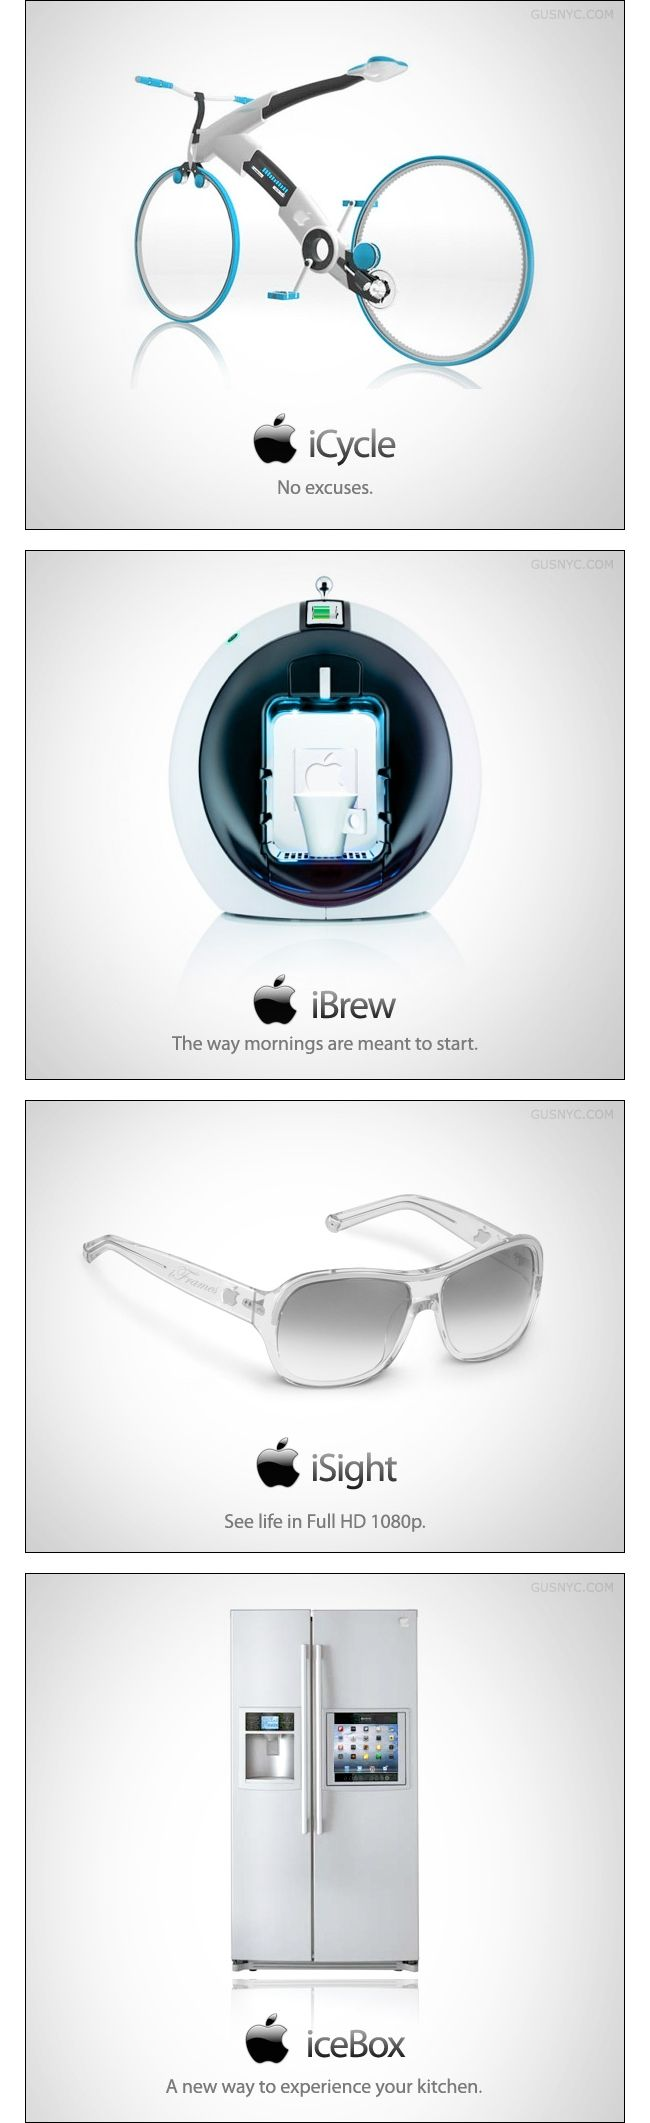 Future Apple Products | You can view the full set along with the individual descriptions for ...